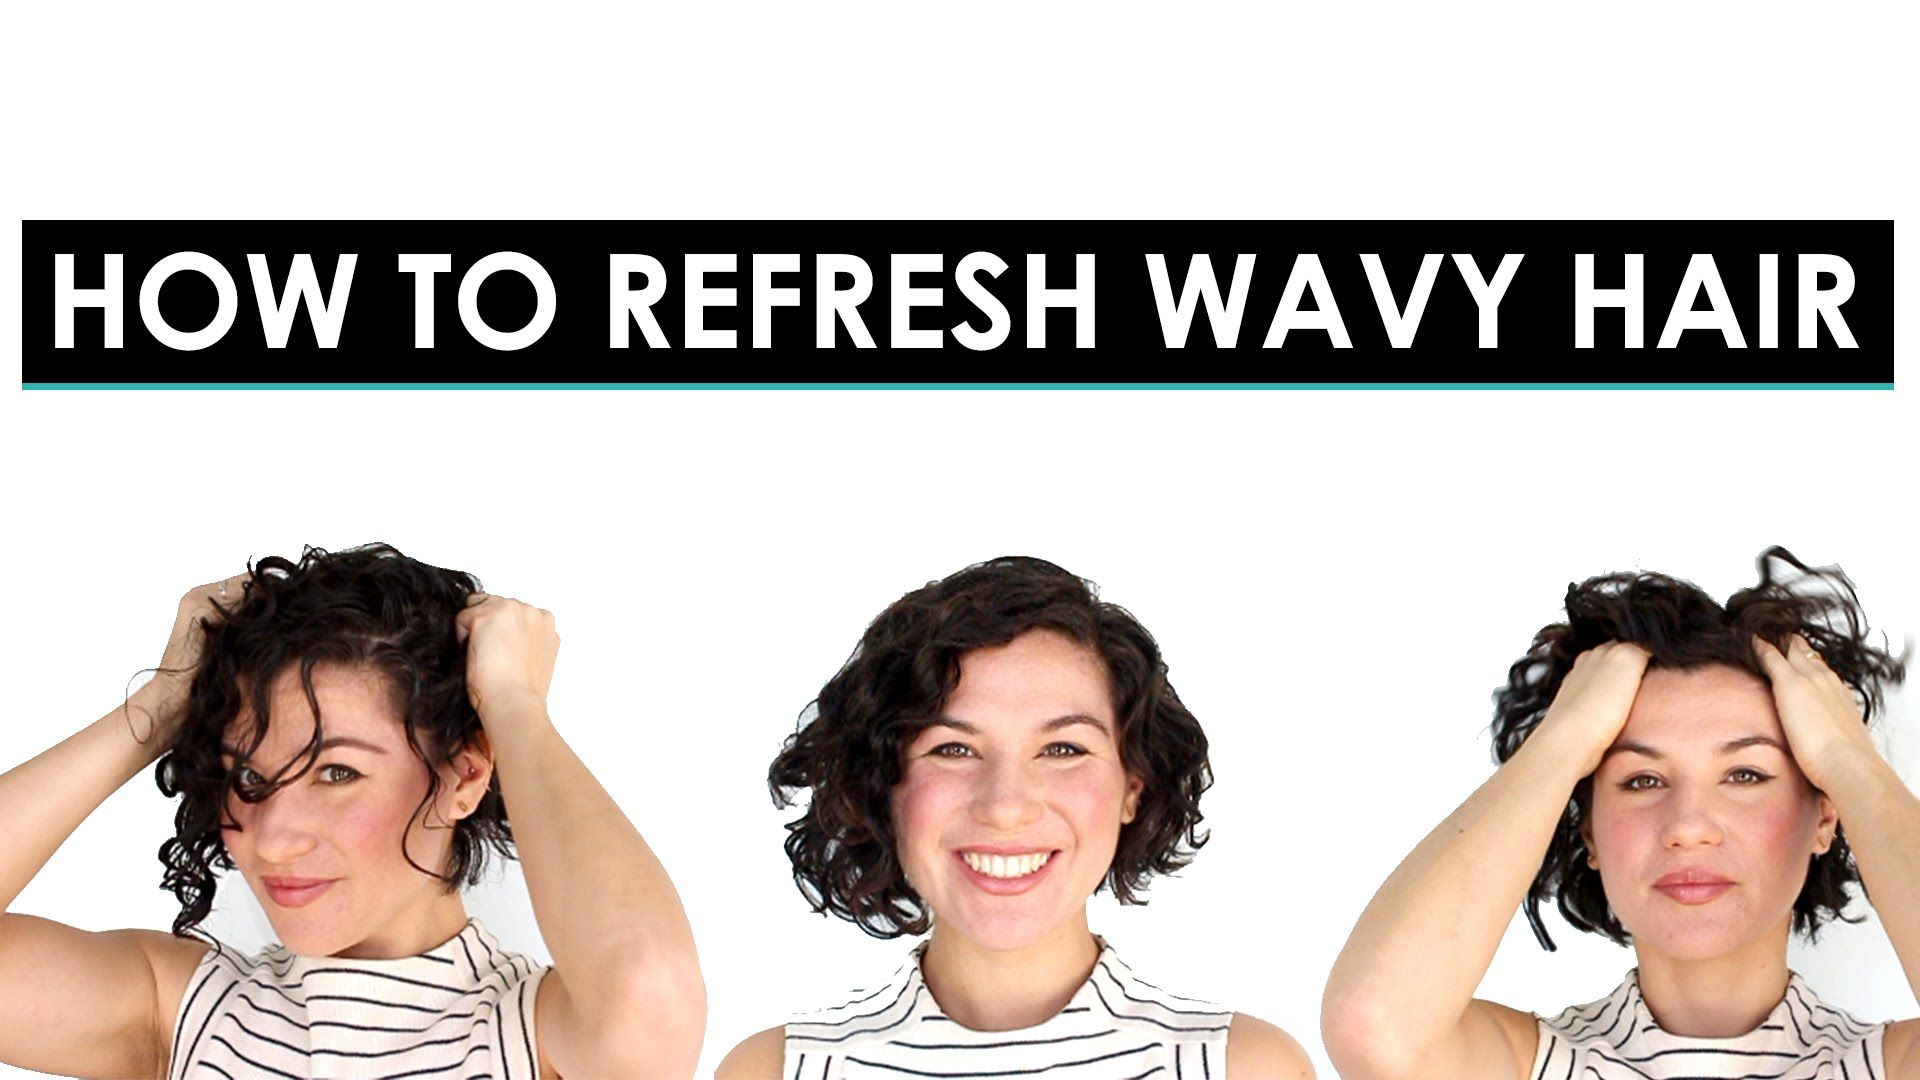 How to Refresh 2nd Day Wavy Hair